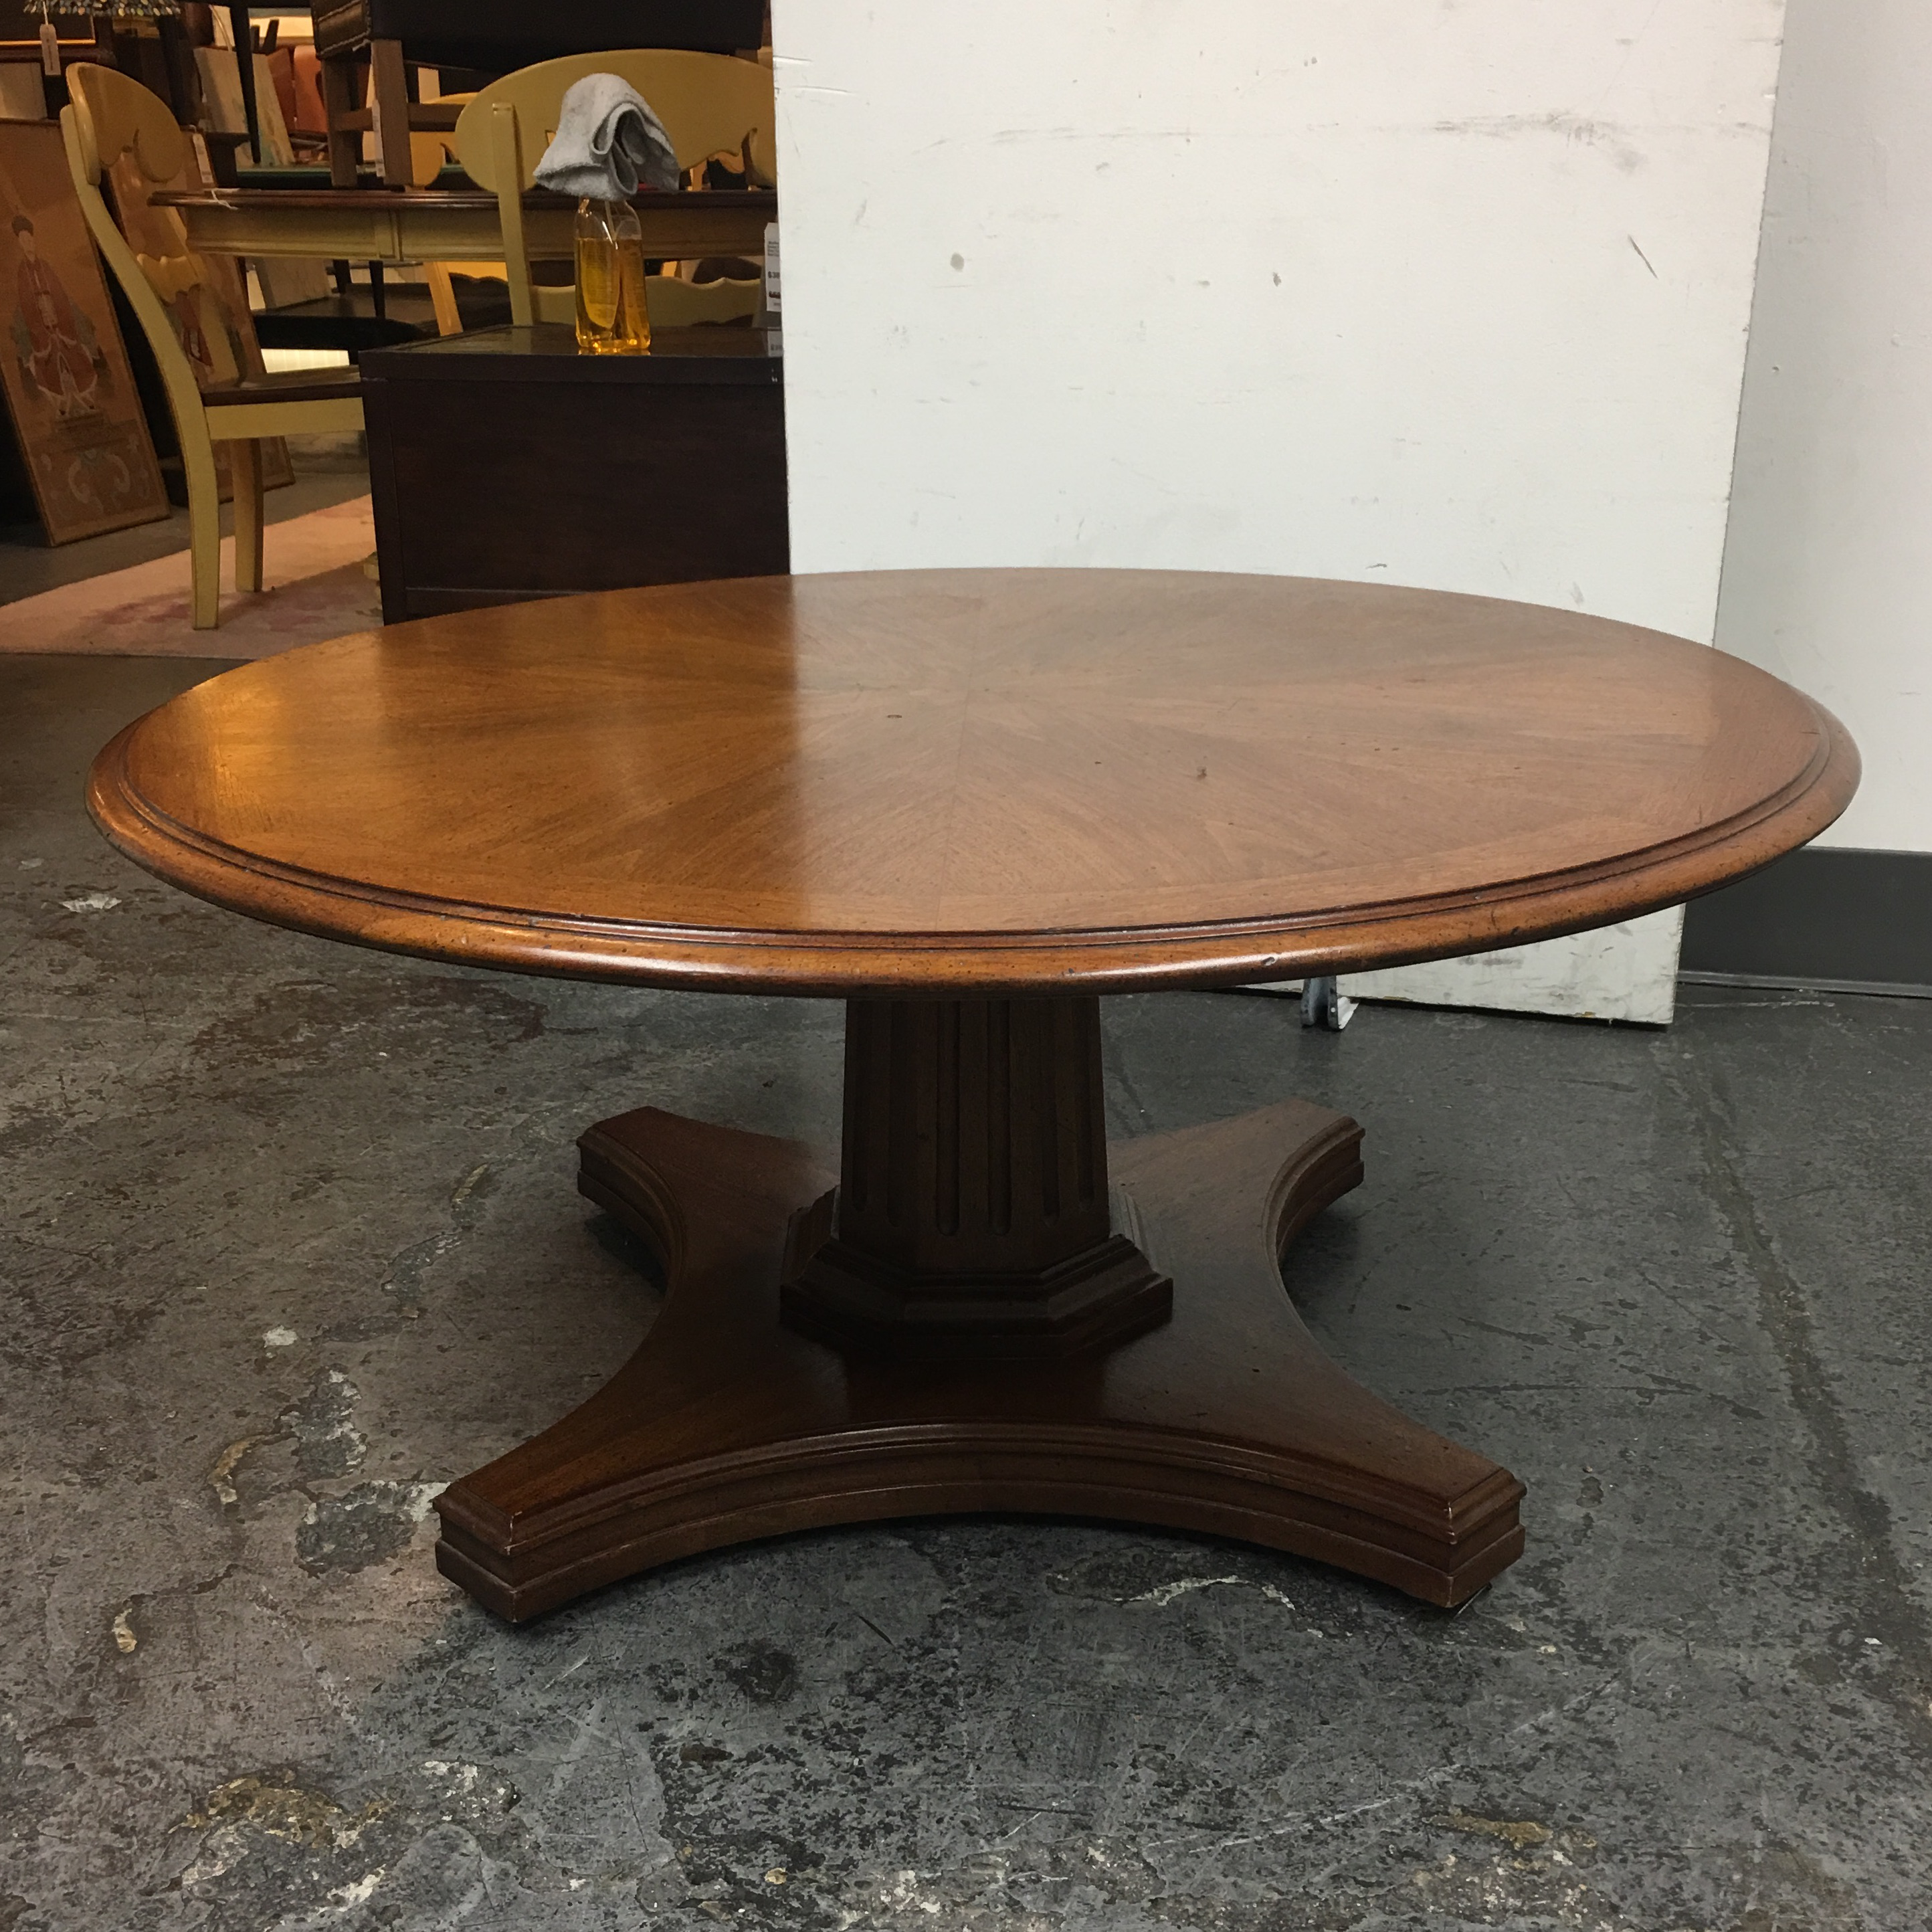 Round Adjustable Height Table From Coffee to Dining | Chairish